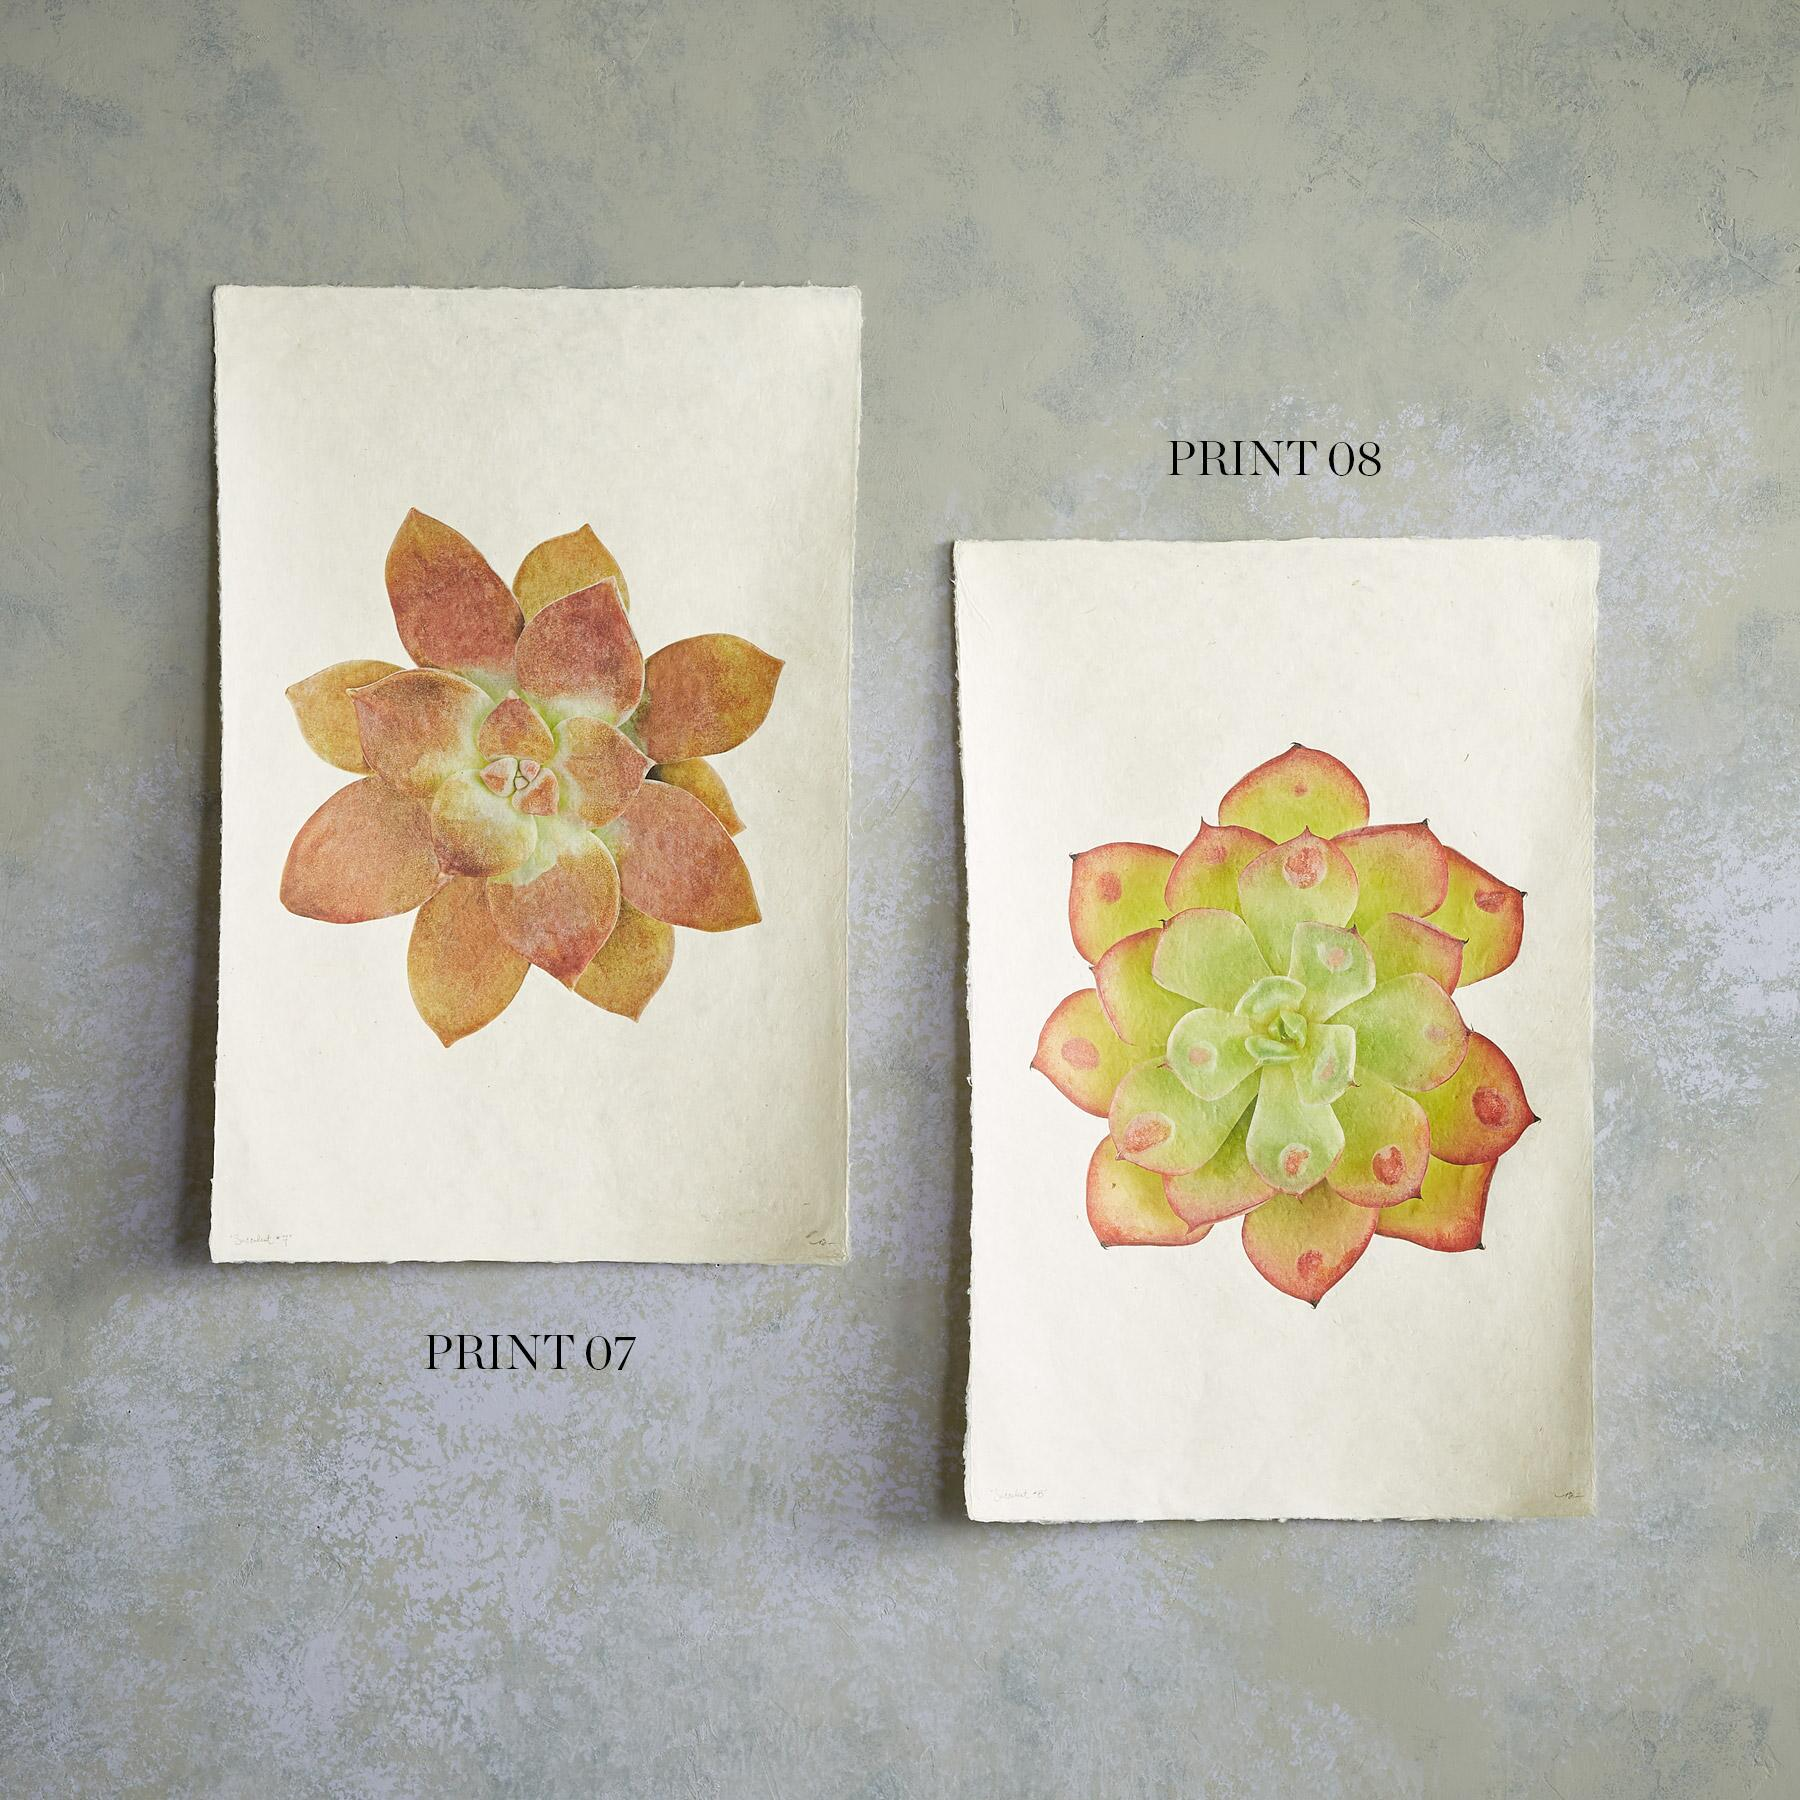 SUCCULENT STUDIES PRINTS: View 4